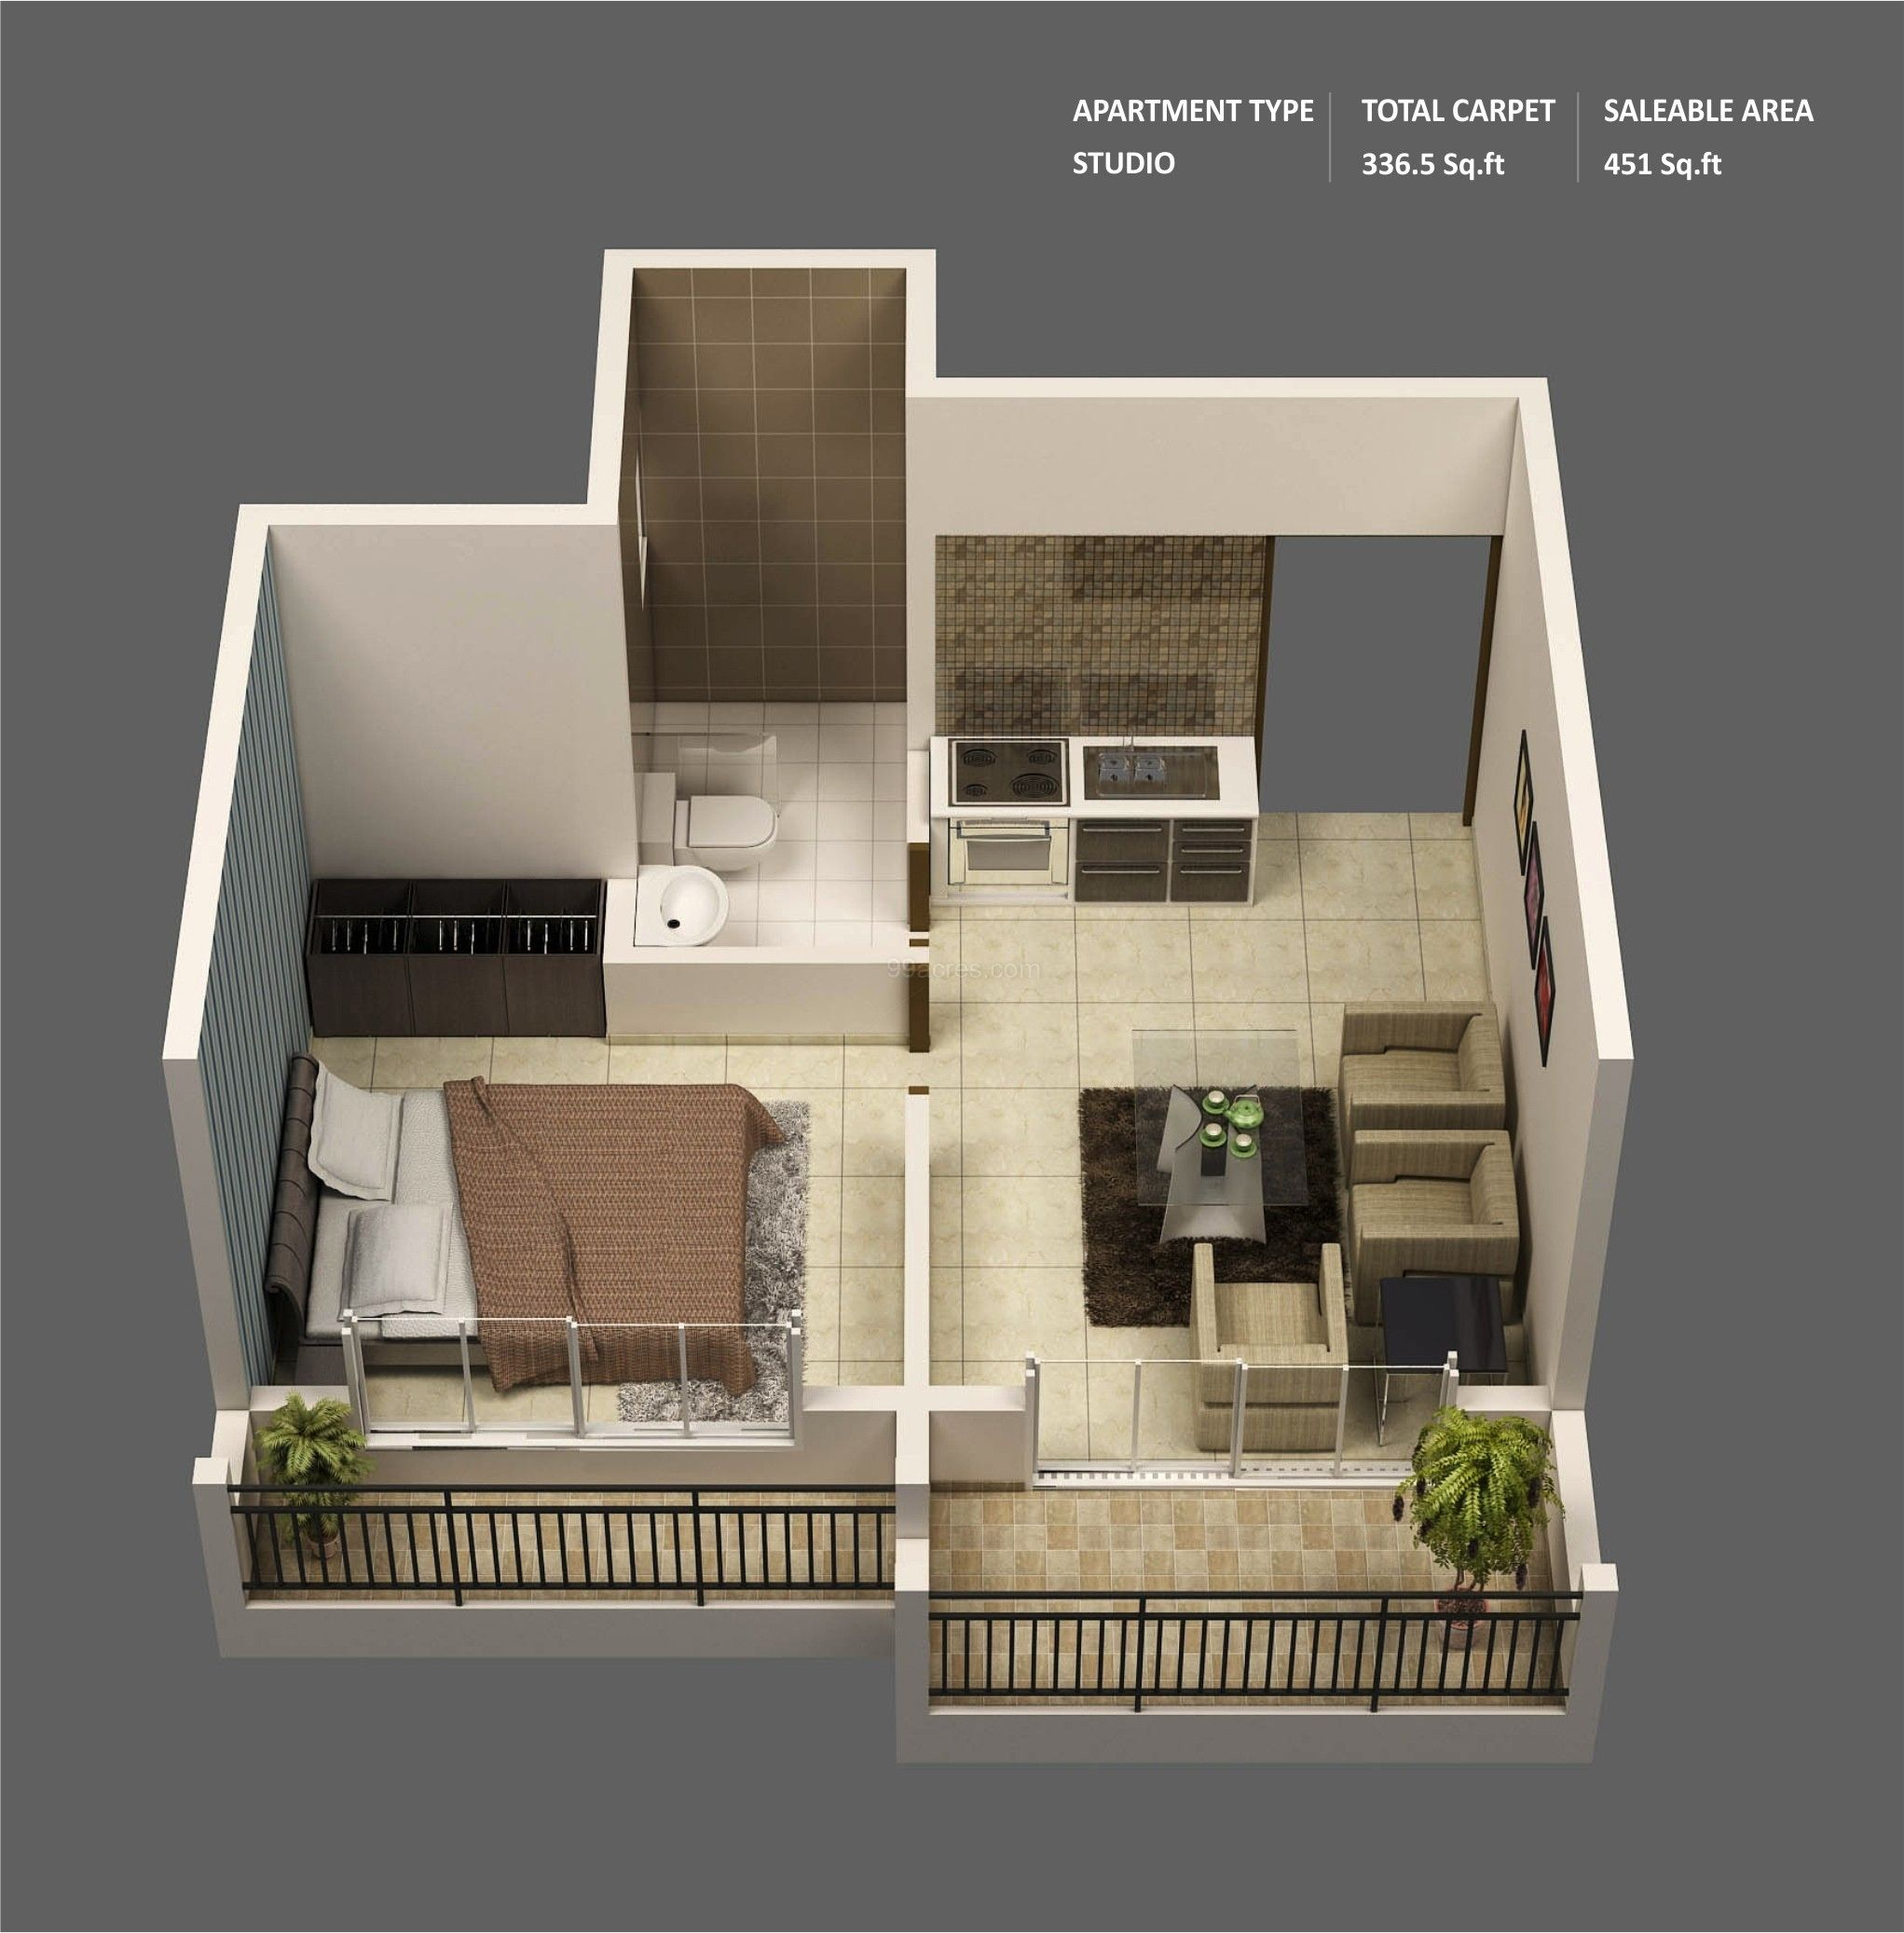 Superb 50 One U201c1u201d Bedroom Apartment/House Plans